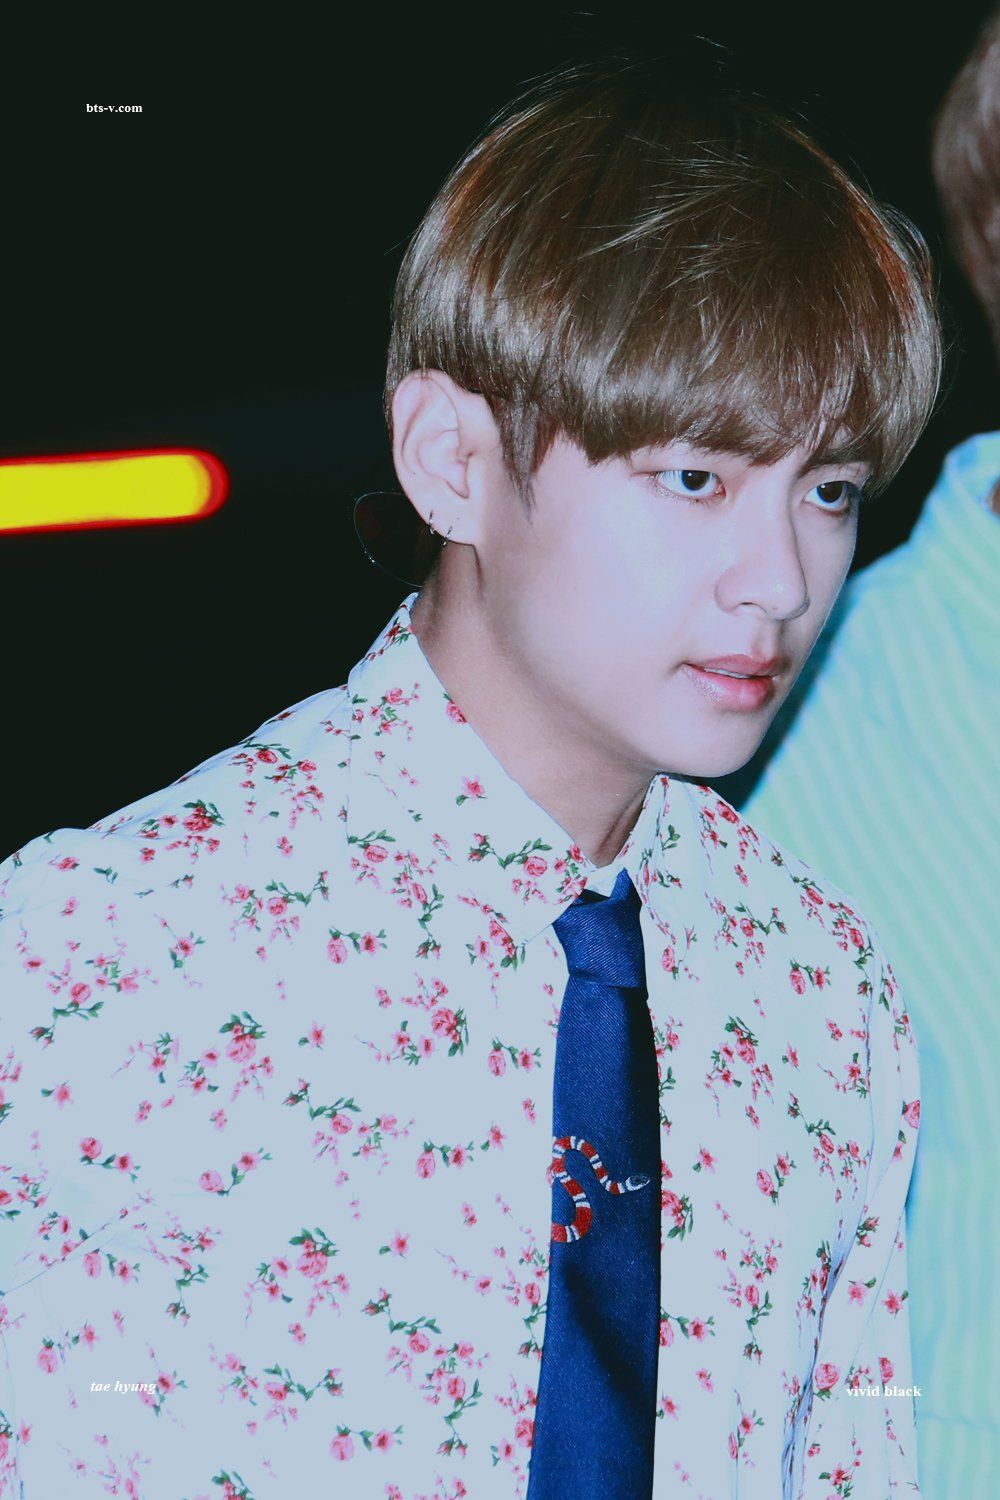 When BTS V Showed Up Wearing This, He Looked Like A Rich CEO's Son